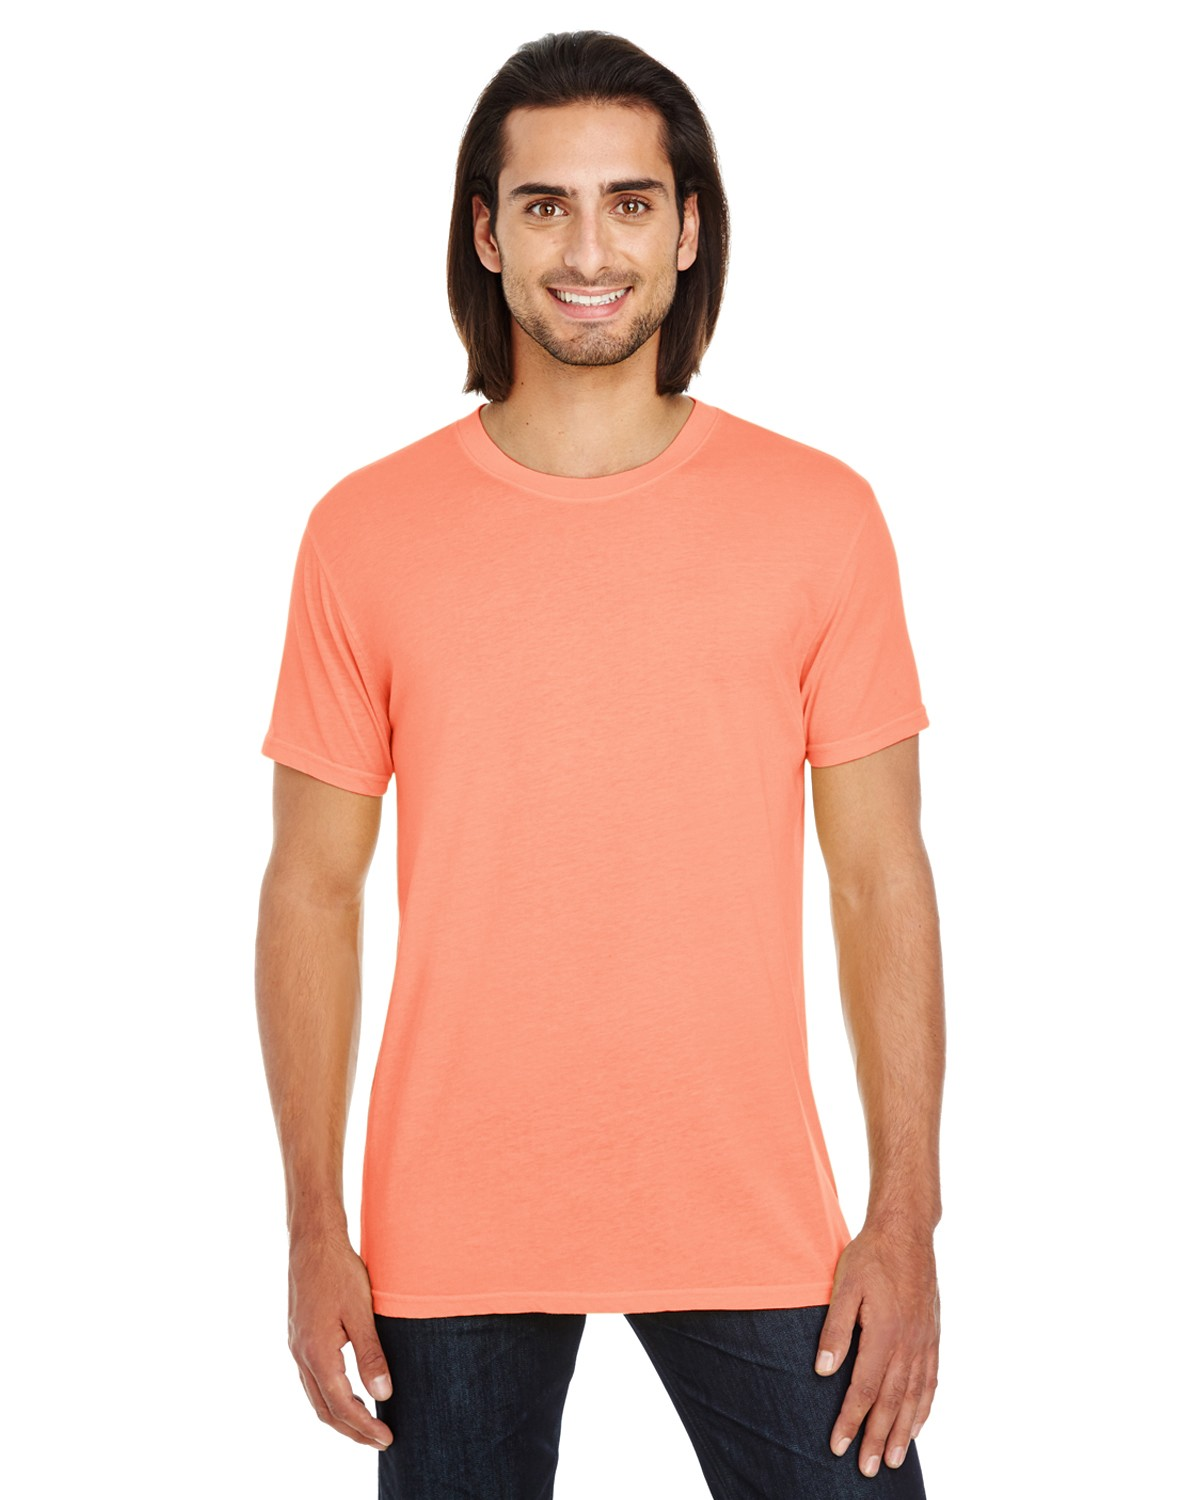 130A Threadfast Apparel TANGERINE